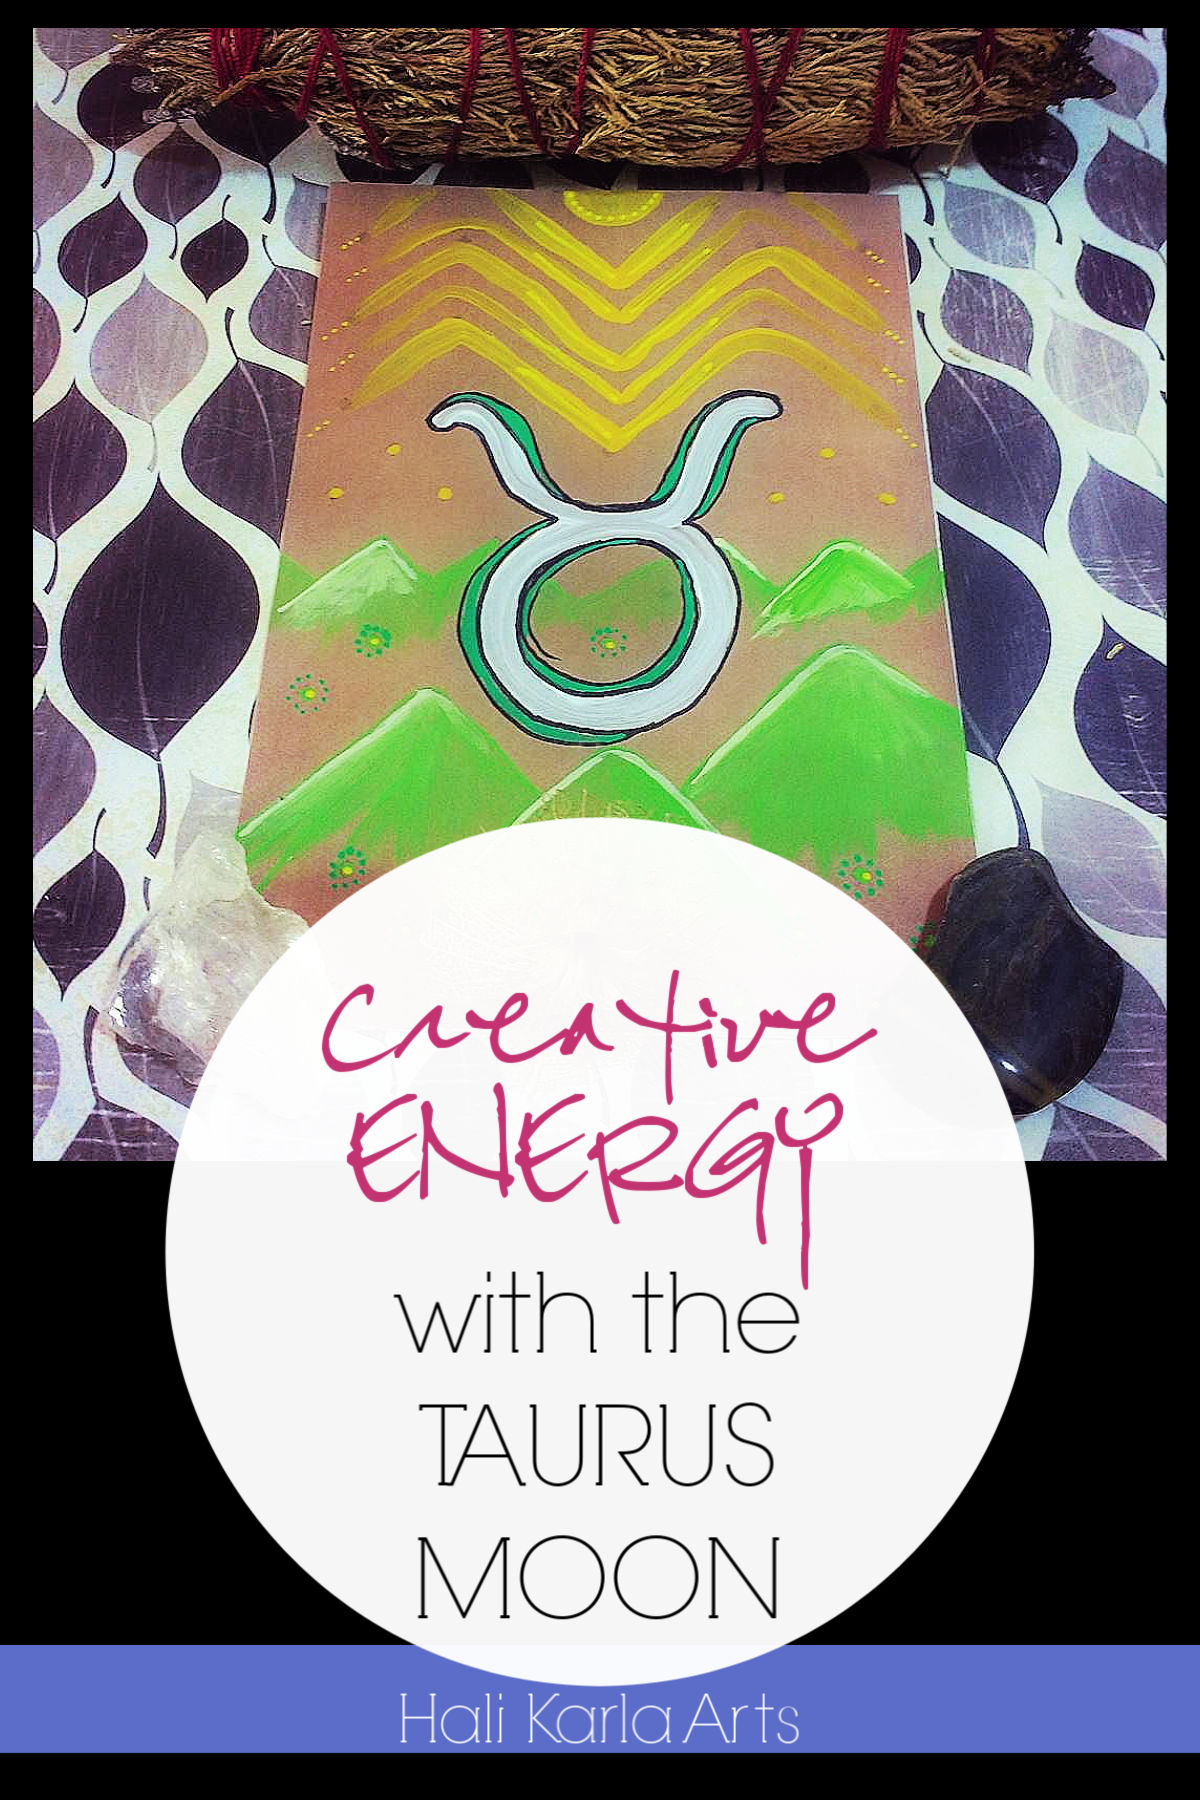 Creative Energy focus when the Moon is the the sign of TAURUS | Hali Karla Arts